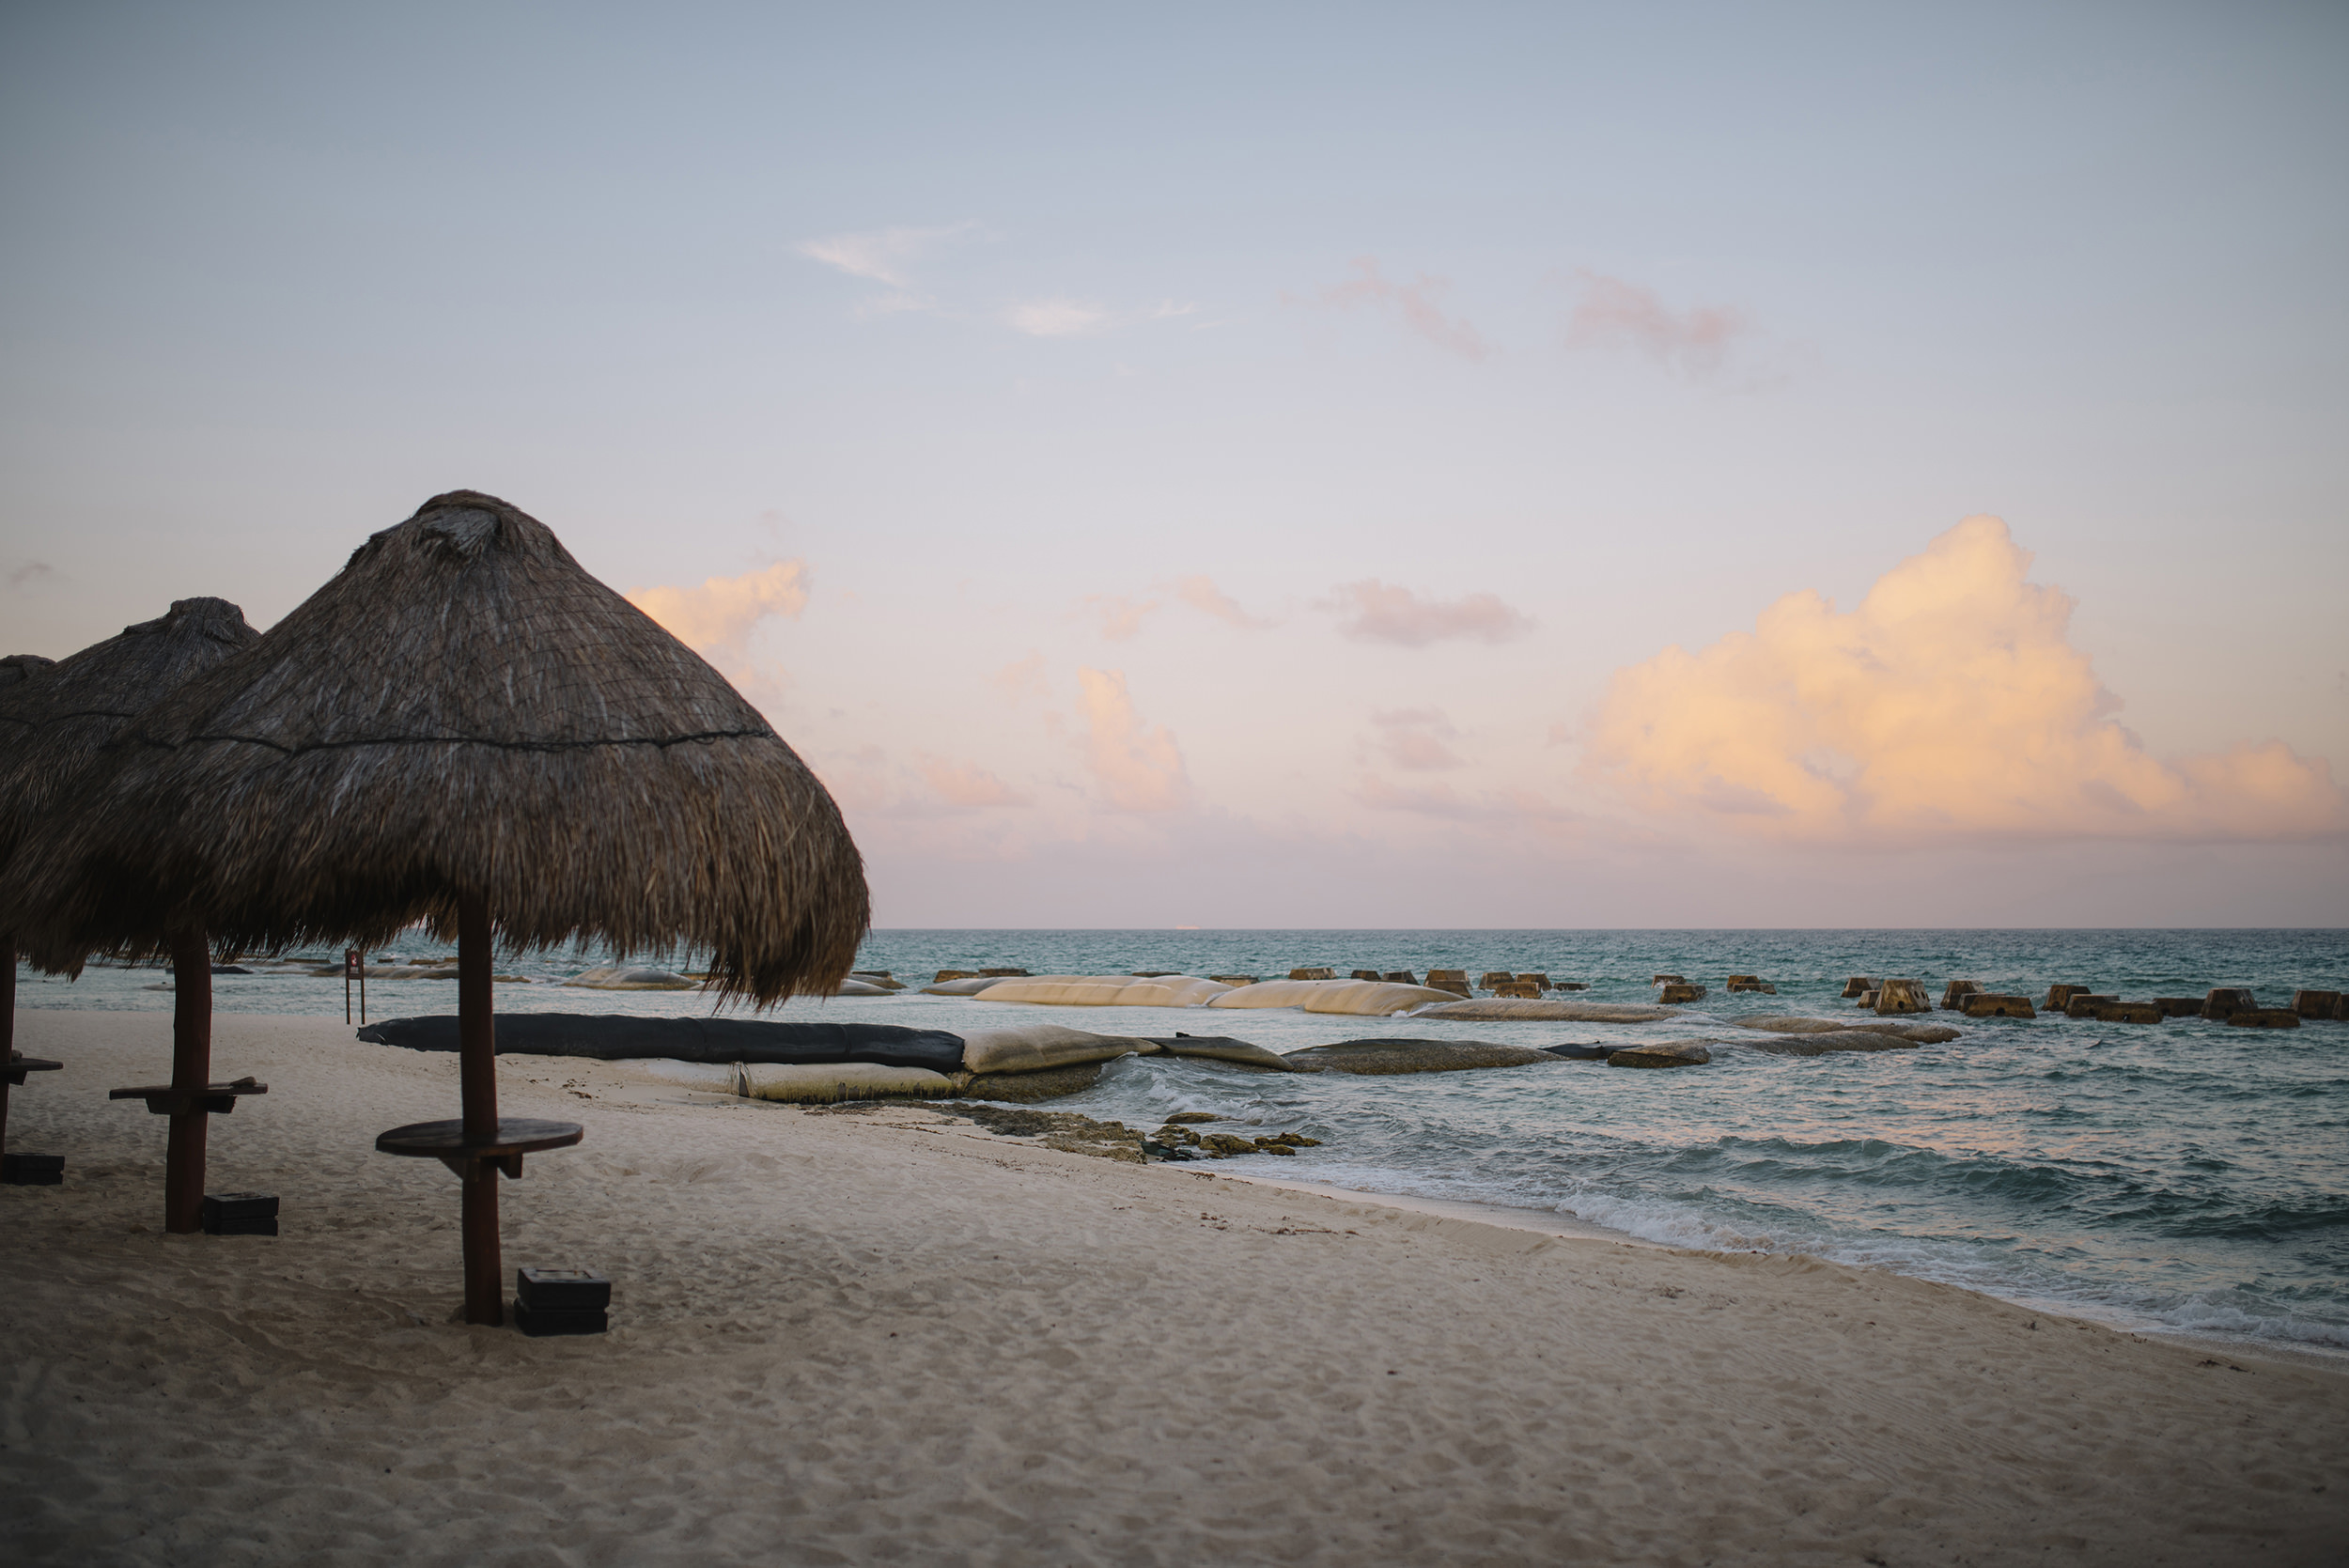 Colby-and-Jess-Intimate-Beach-Wedding-Destination-Cancun-Mexico129.jpg